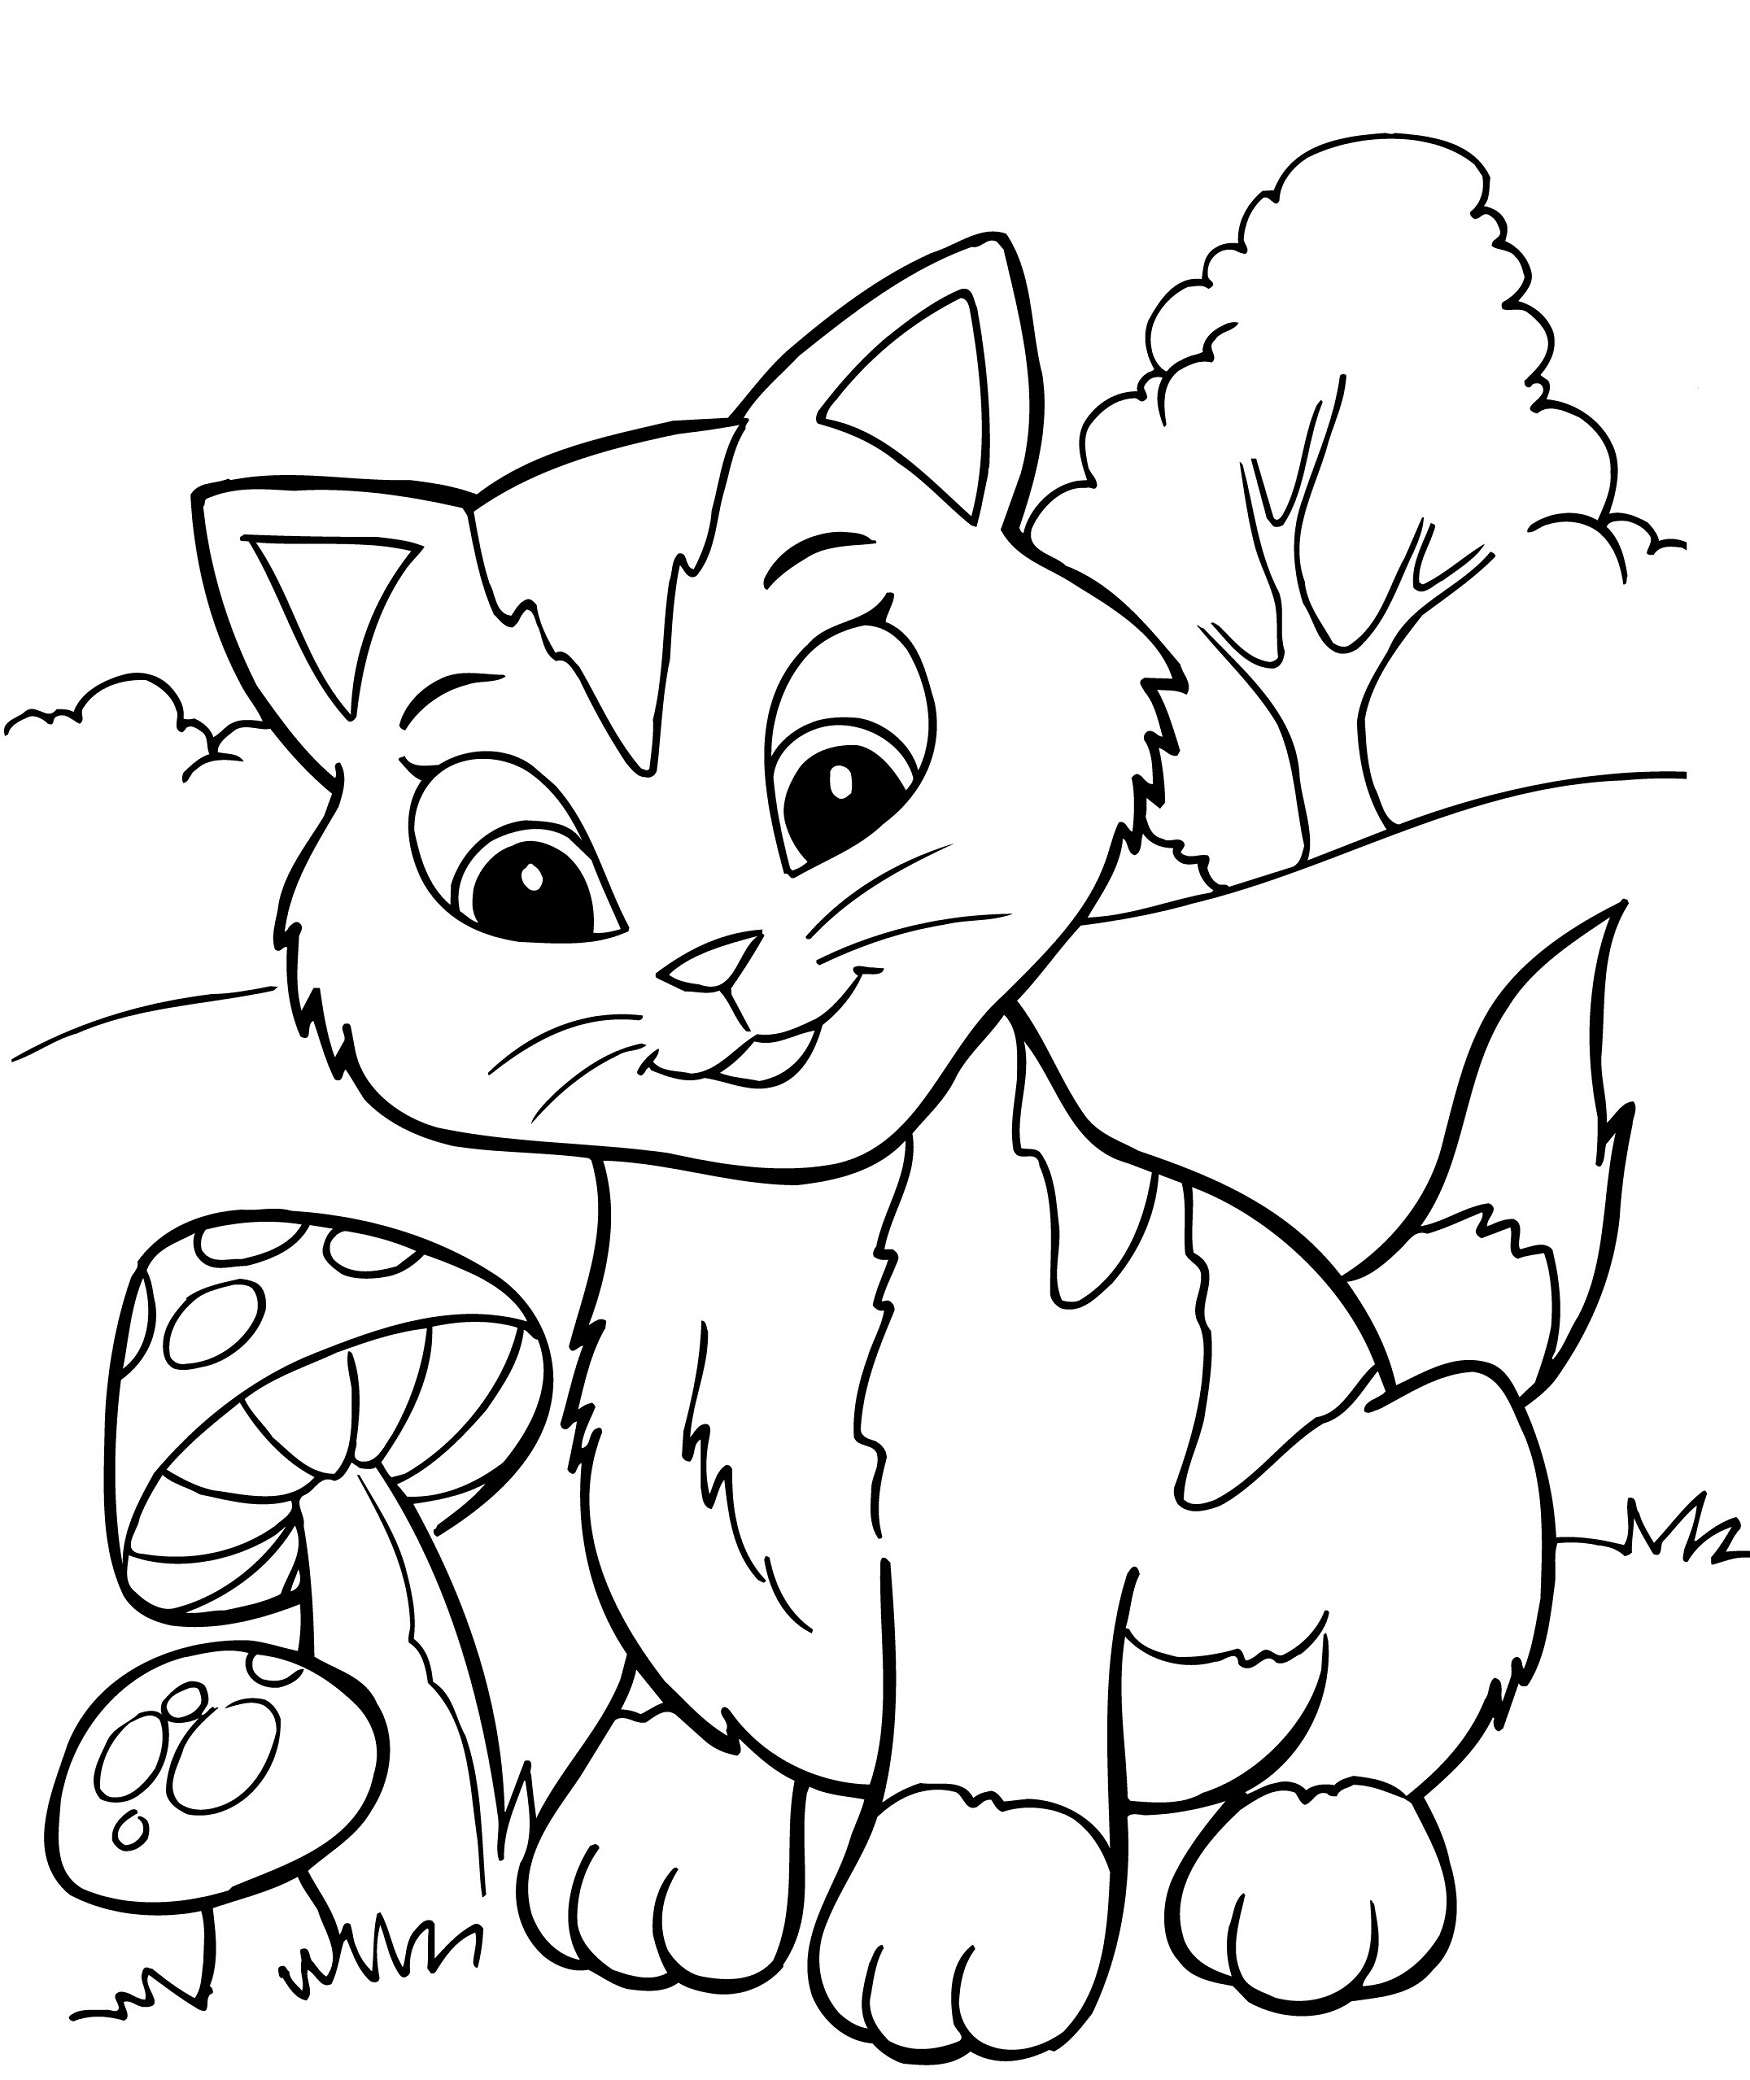 cat colouring pages cute cat coloring pages coloring home cat pages colouring